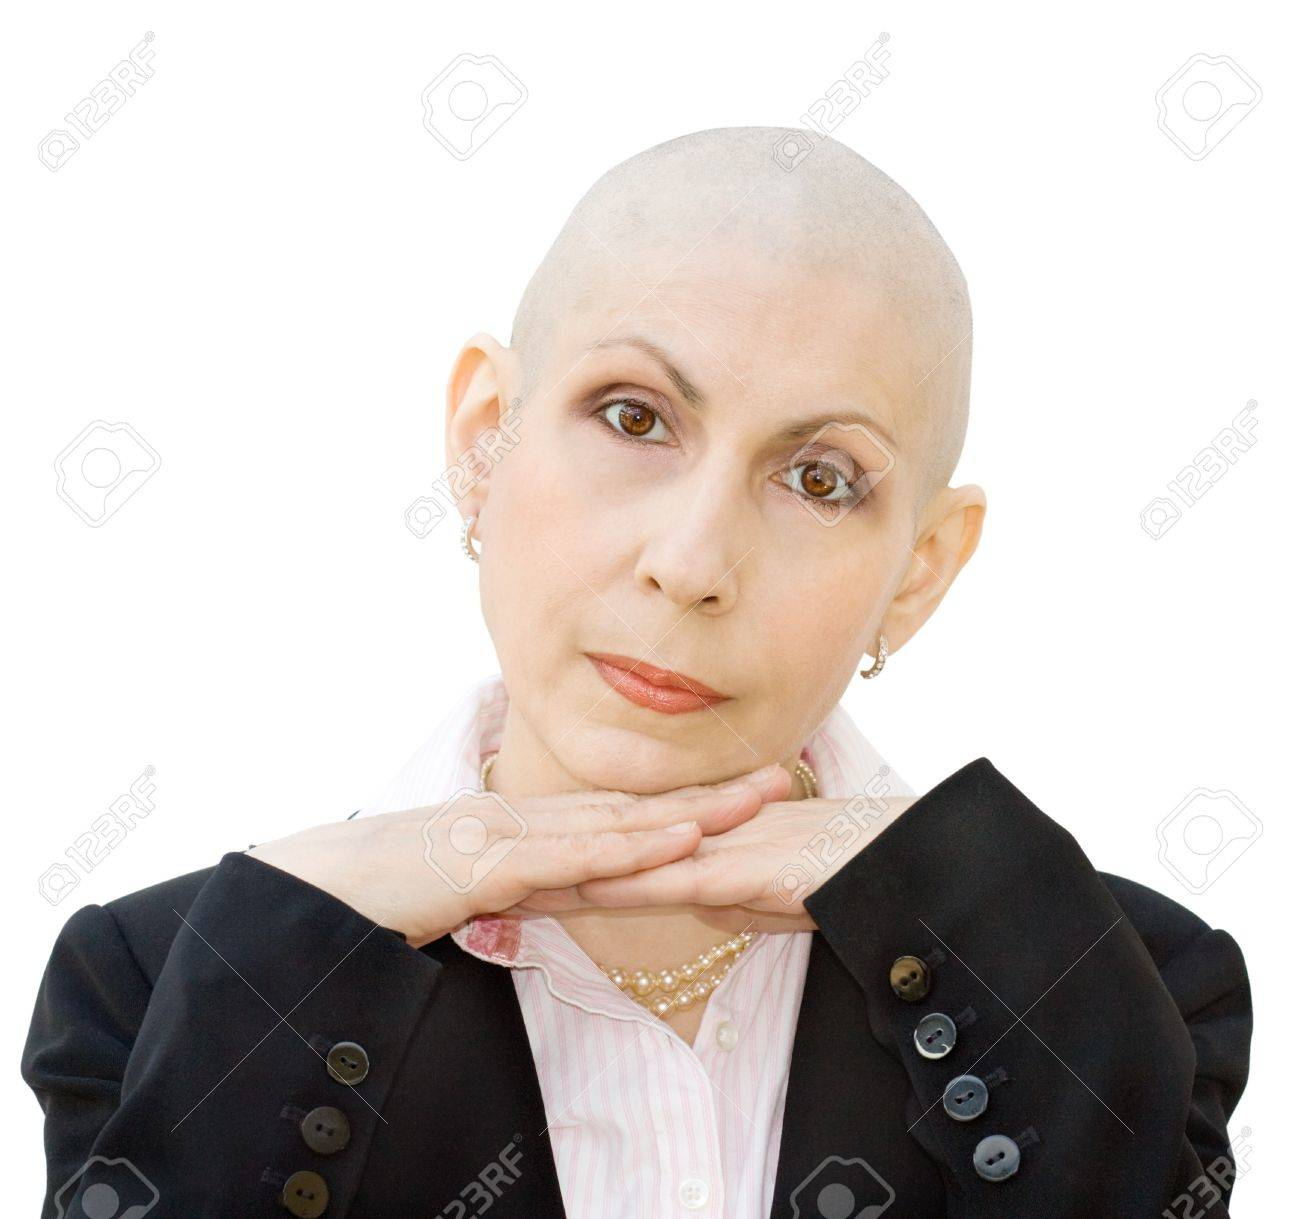 Portrait of cancer patient undergoing chemotherapy and loss of hair. Real woman, diagnosed with breast cancer and ovarian cancer. Isolated over white background. Stock Photo - 10340488